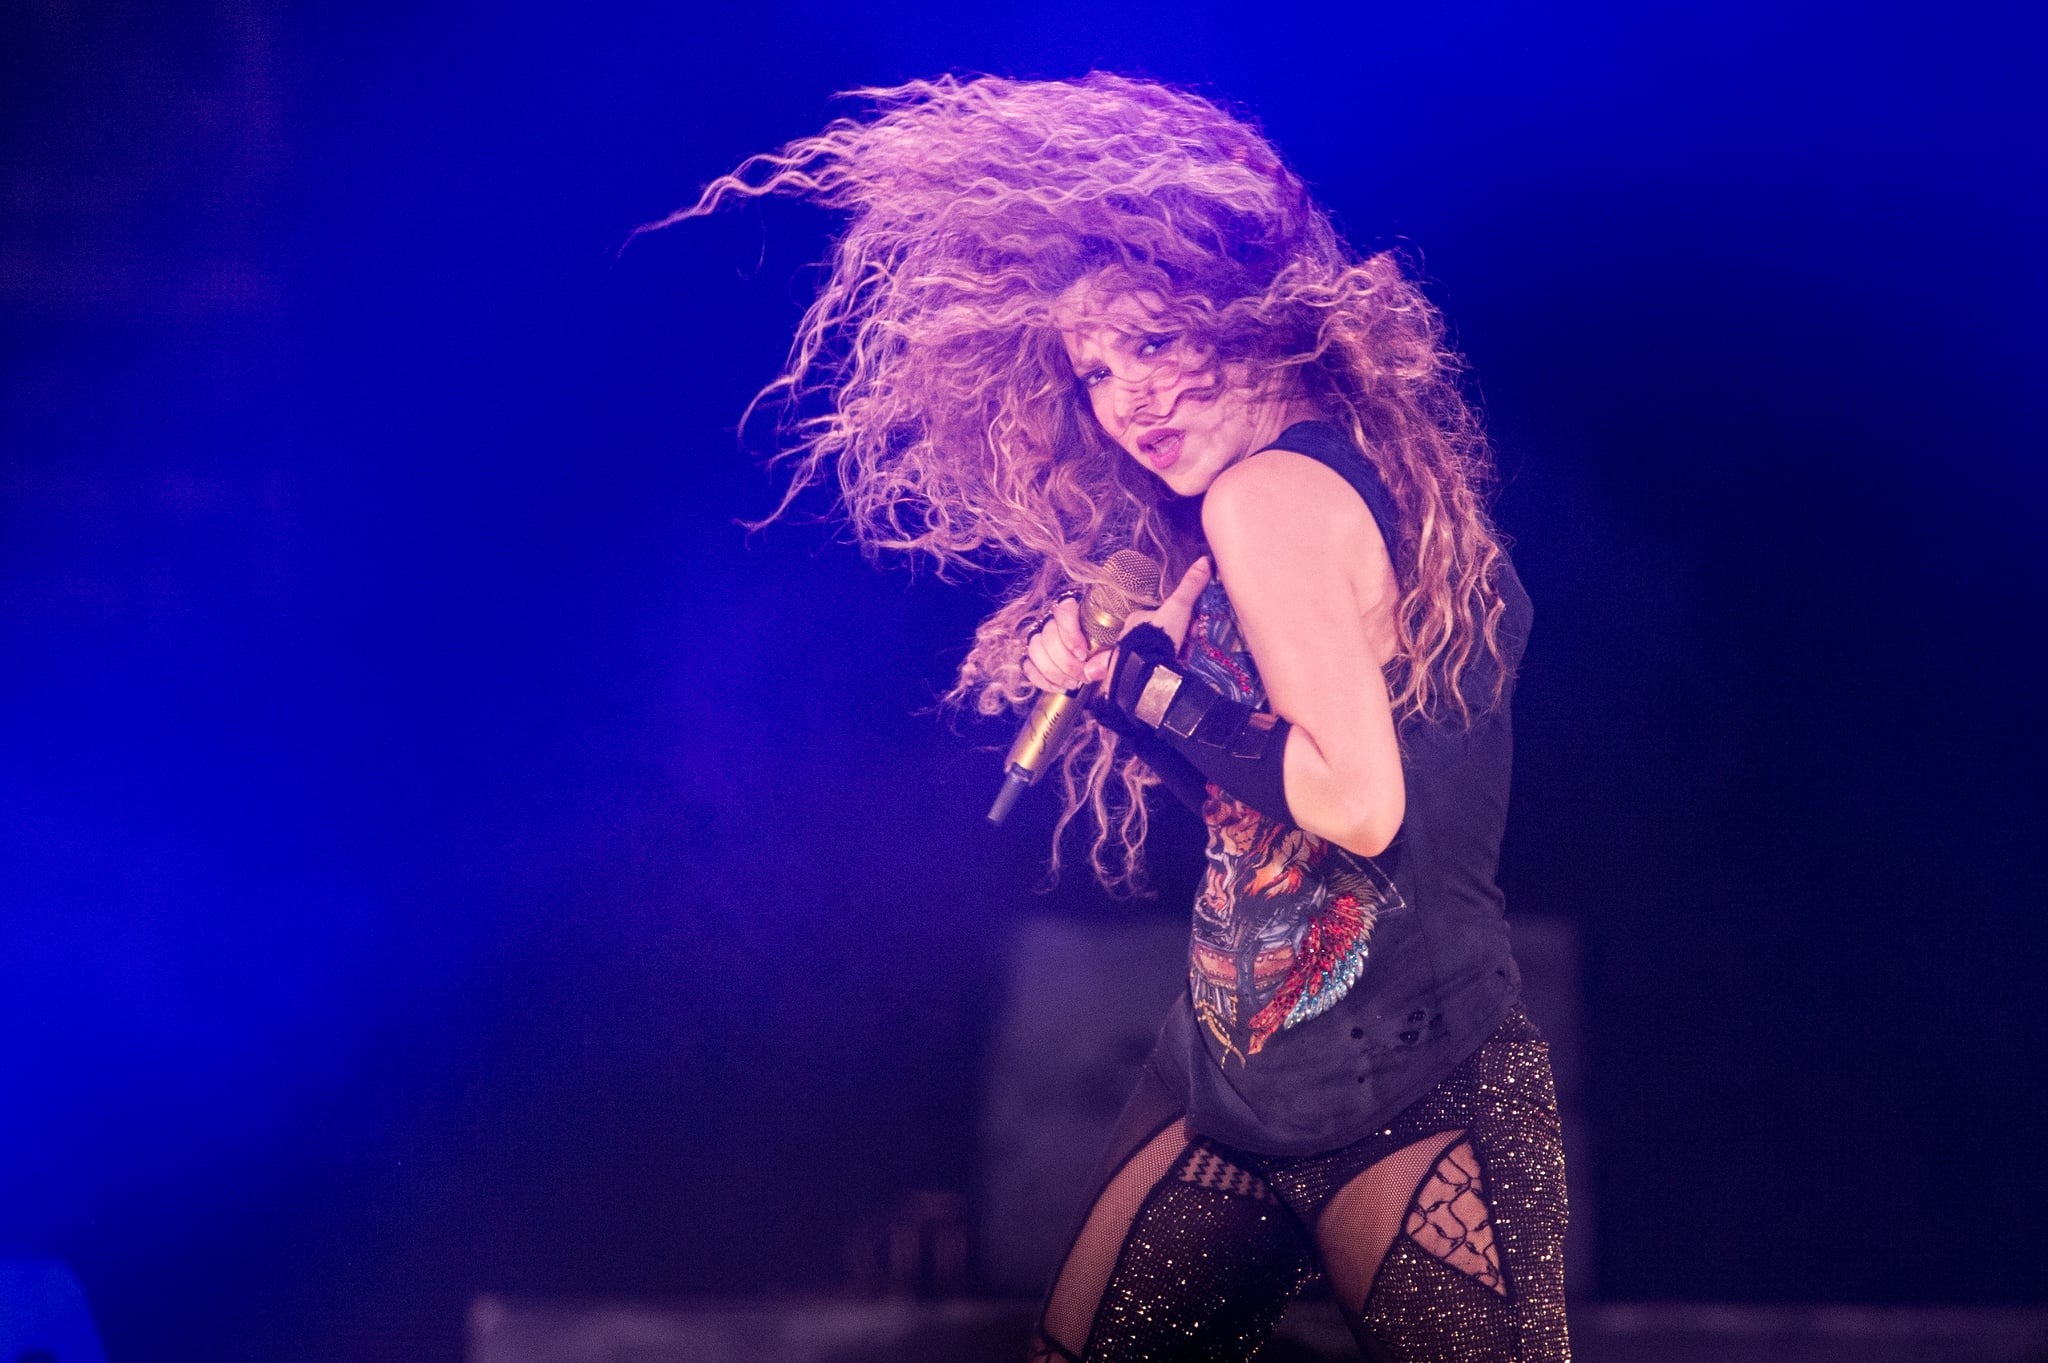 LONDON, ENGLAND - JUNE 11:(EDITORIAL USE ONLY)  Shakira performs during the 'El Dorado World Tour' at The O2 Arena on June 11, 2018 in London, England. (Photo by Brian Rasic/WireImage)